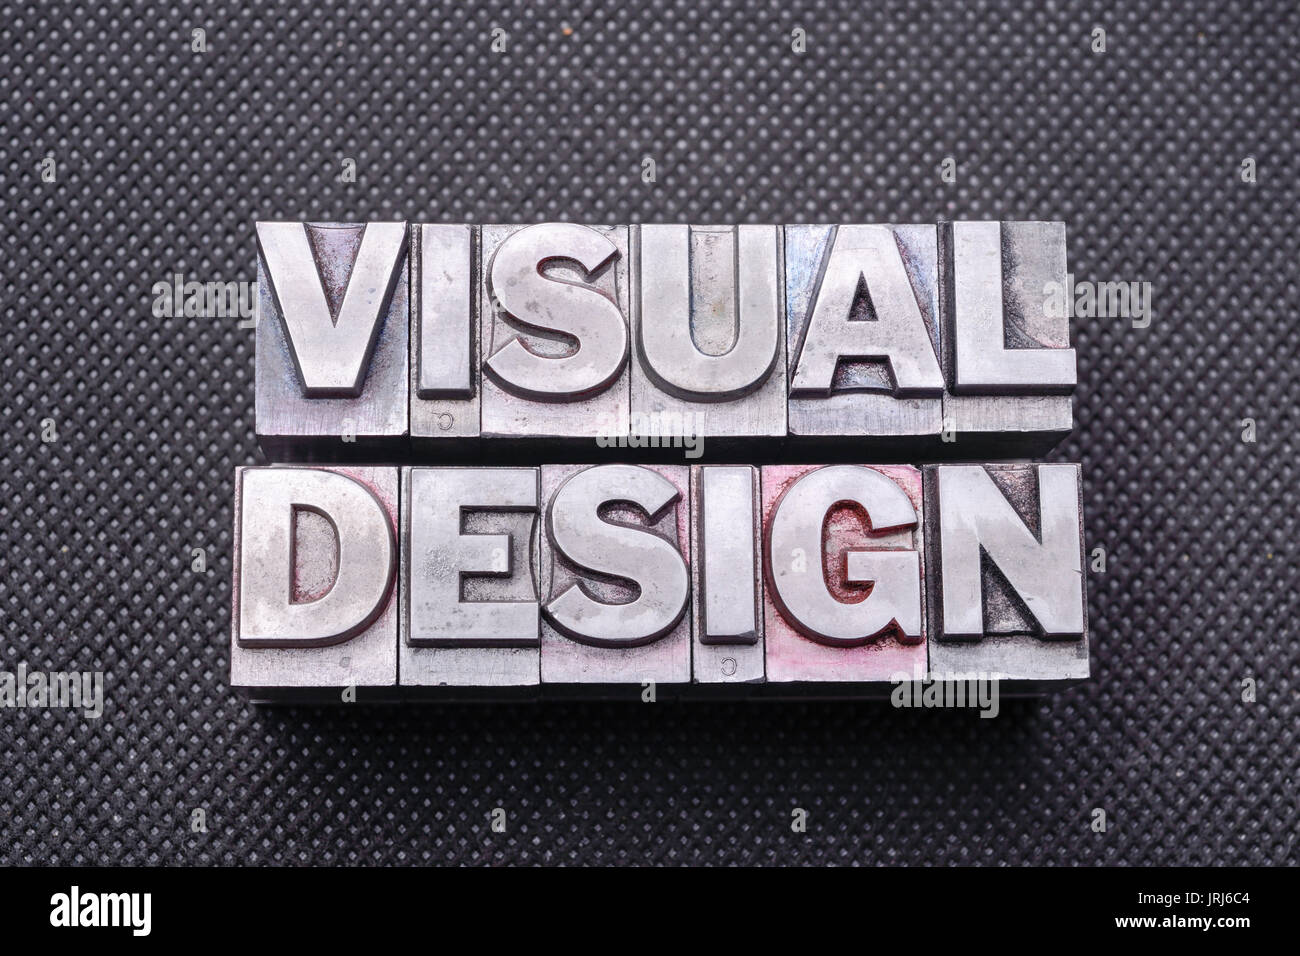 visual design phrase made from metallic letterpress blocks on black perforated surface - Stock Image